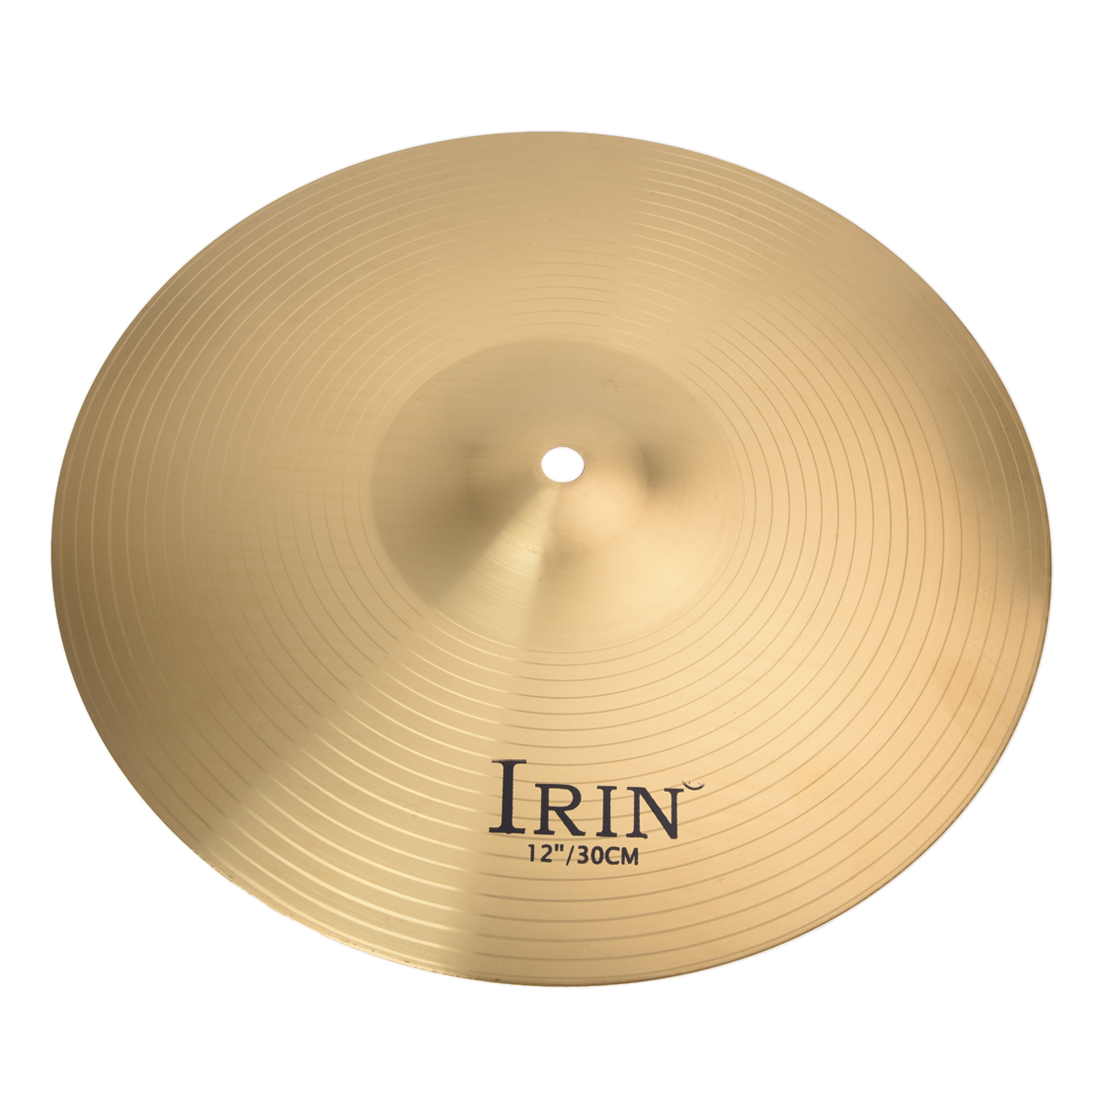 SALES 5xIRIN High Quality 12 Brass Crash Ride Hi-Hat Cymbals Box Drum Set Professional хай хэт и контроллер для электронной ударной установки roland fd 8 v drum hi hat controller